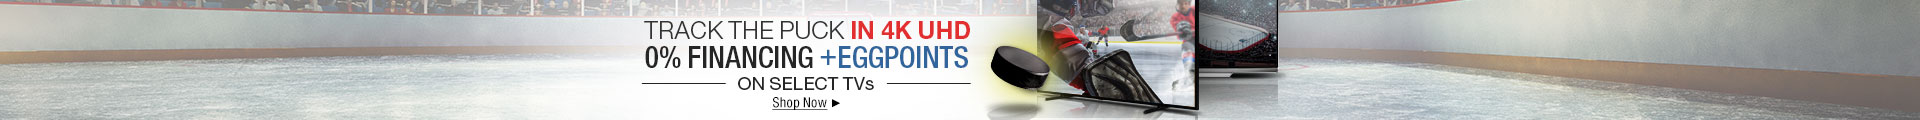 TRACK THE PUCK IN 4K UHD